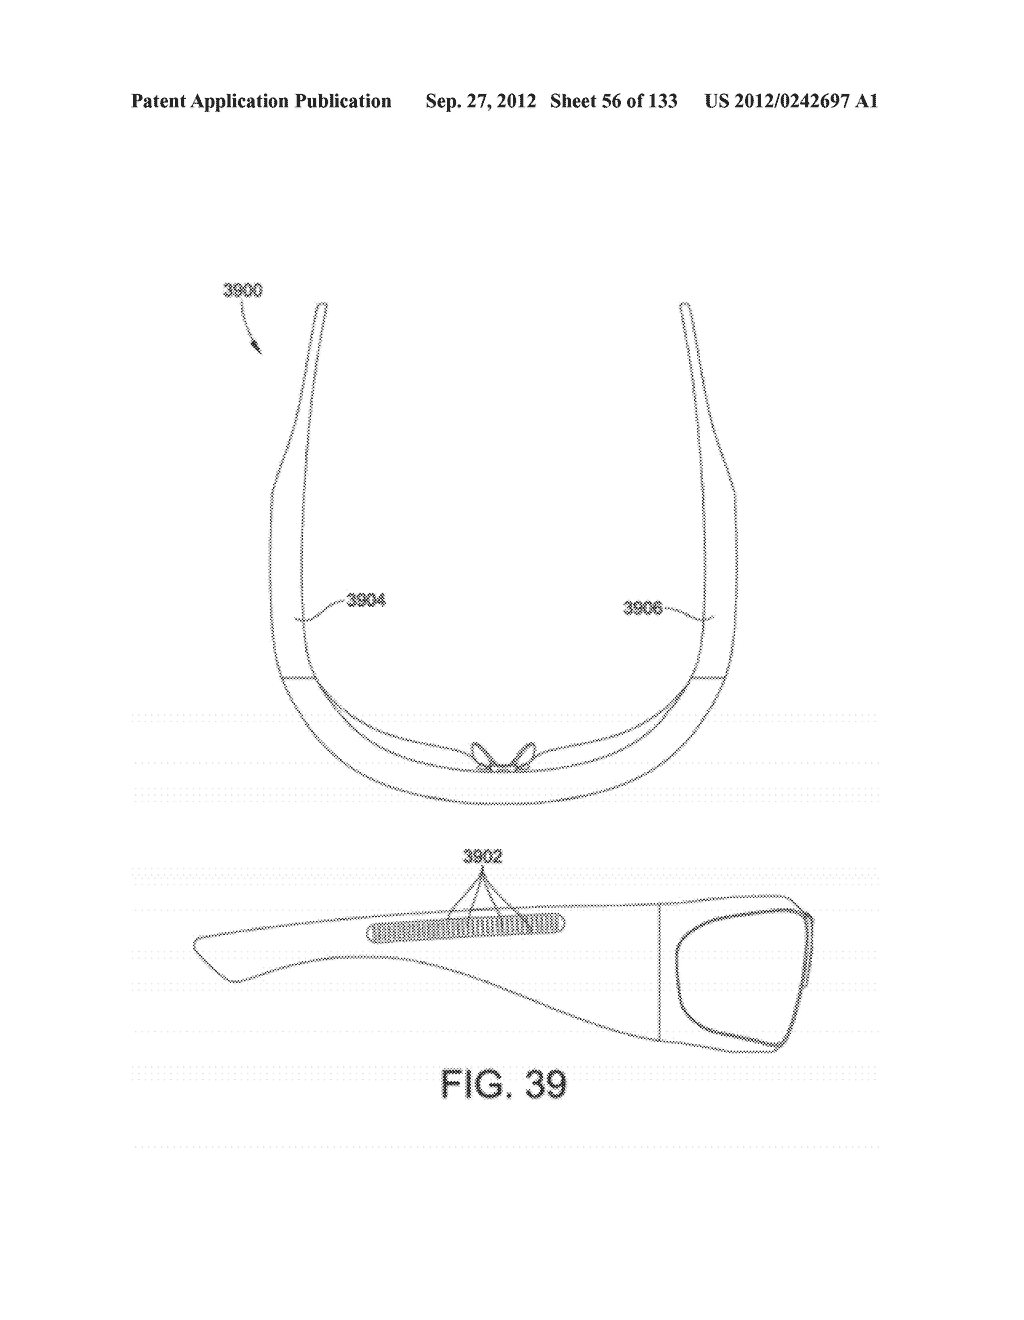 SEE-THROUGH NEAR-EYE DISPLAY GLASSES WITH THE OPTICAL ASSEMBLY INCLUDING     ABSORPTIVE POLARIZERS OR ANTI-REFLECTIVE COATINGS TO REDUCE STRAY LIGHT - diagram, schematic, and image 57